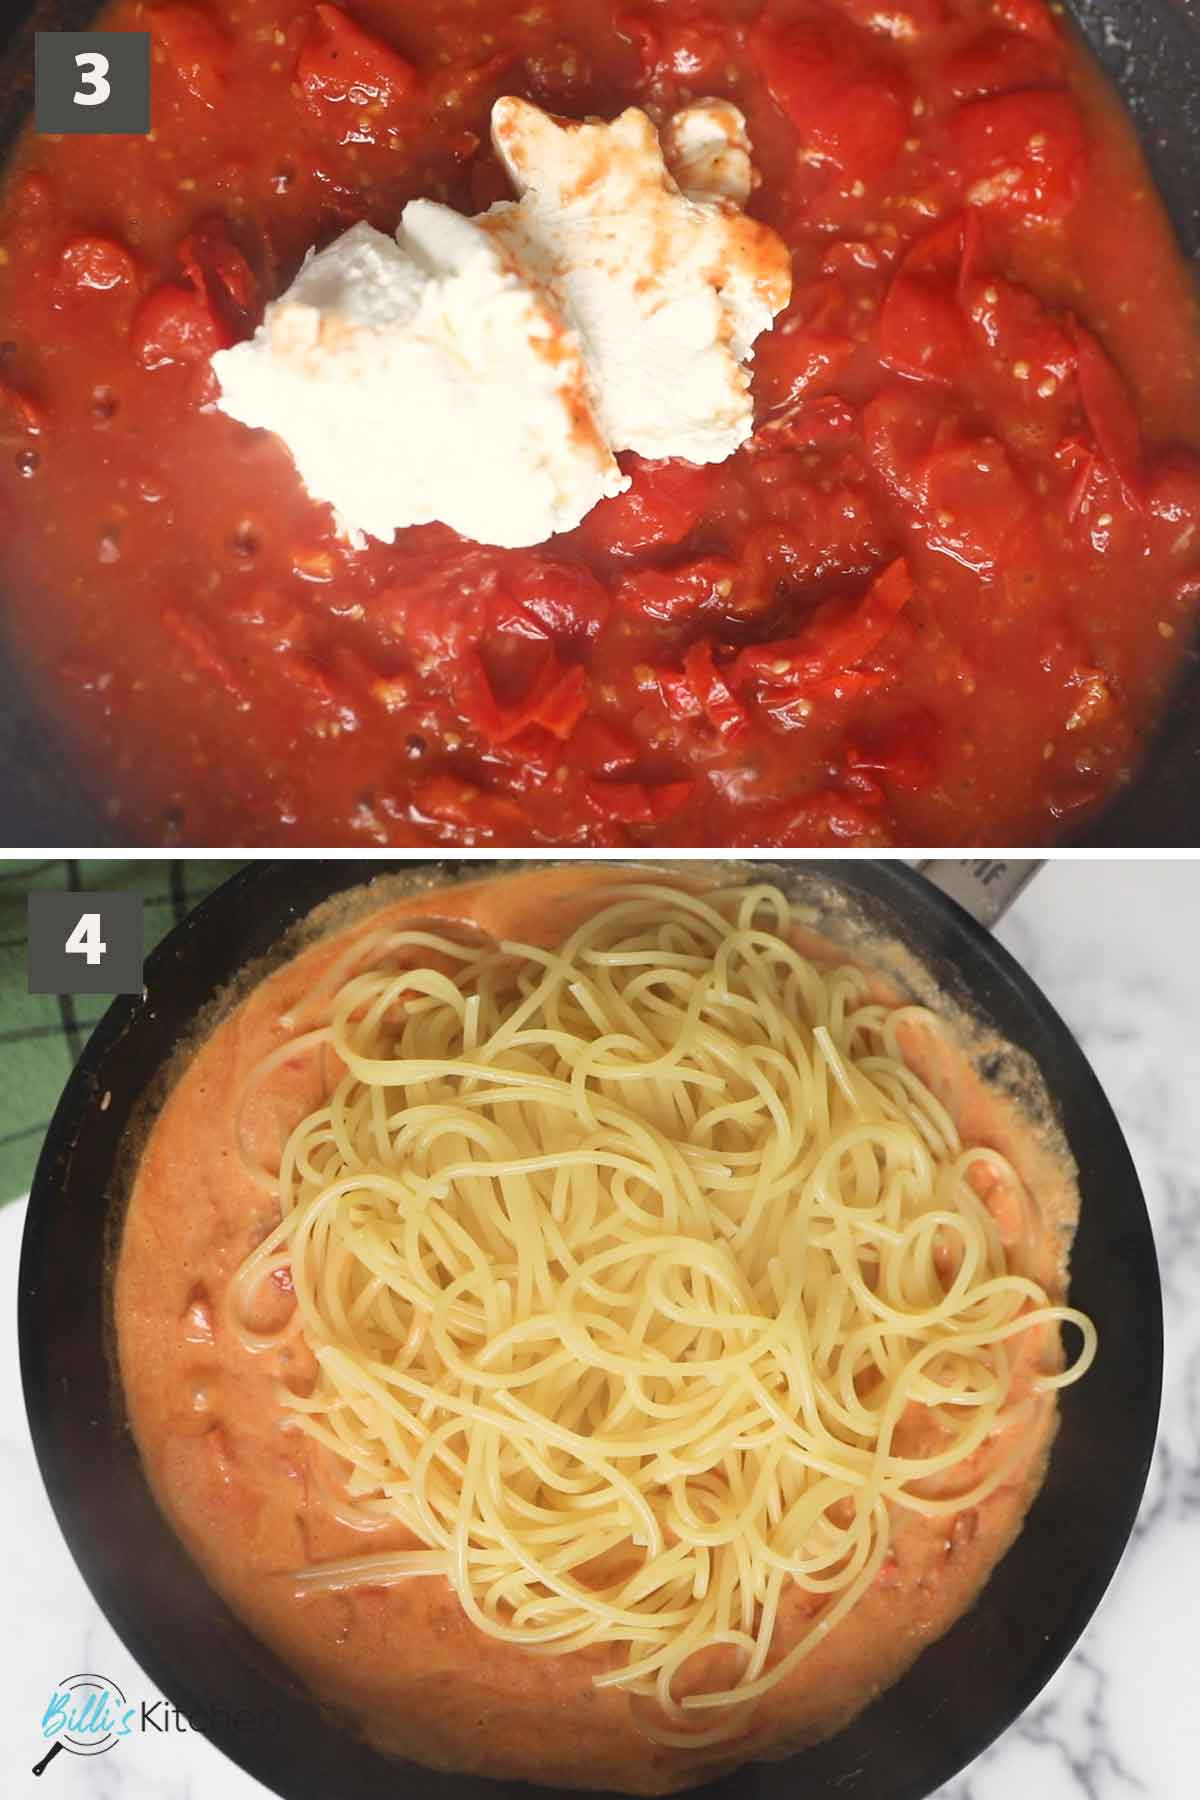 Second part of a collage of images showing the step by step process on how to prepare 15-Minute Tomato and Mascarpone Pasta at home.